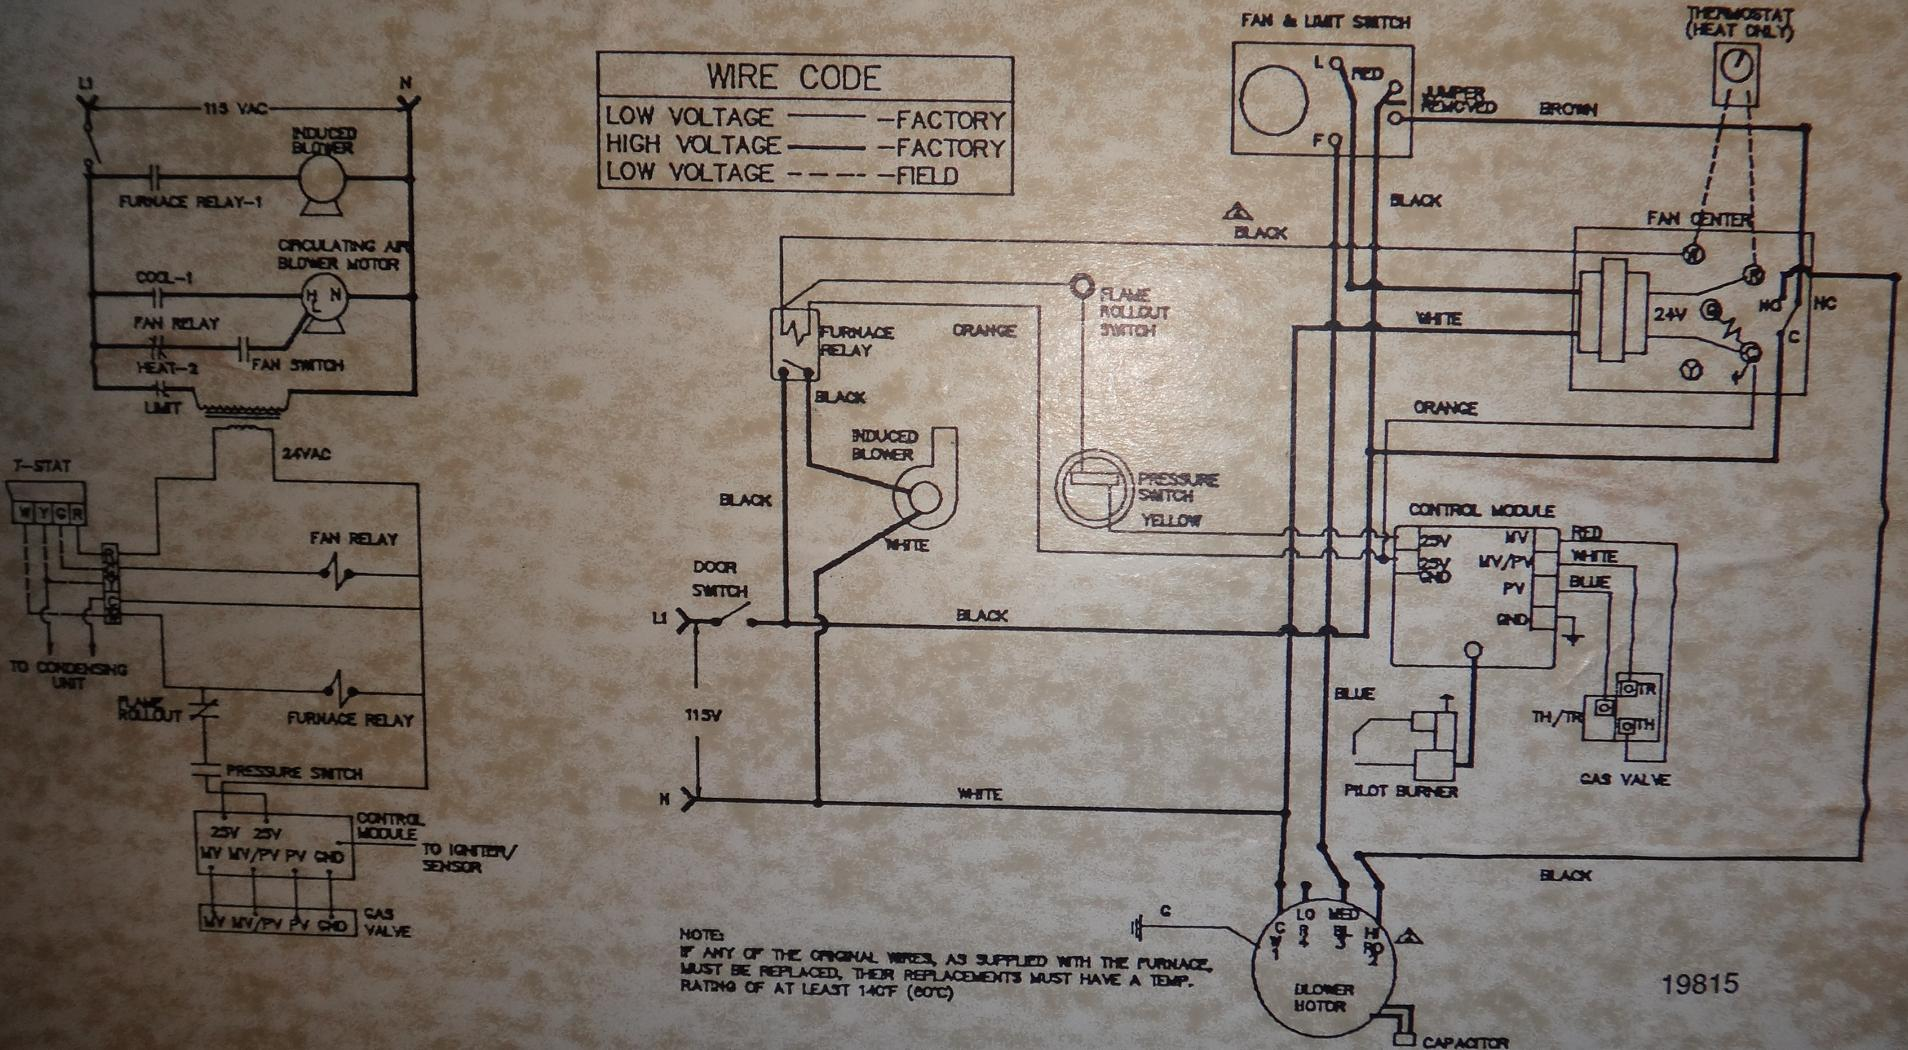 furnace fan wiring diagram 1994 ford f150 radio how does this switch the blower to high speed